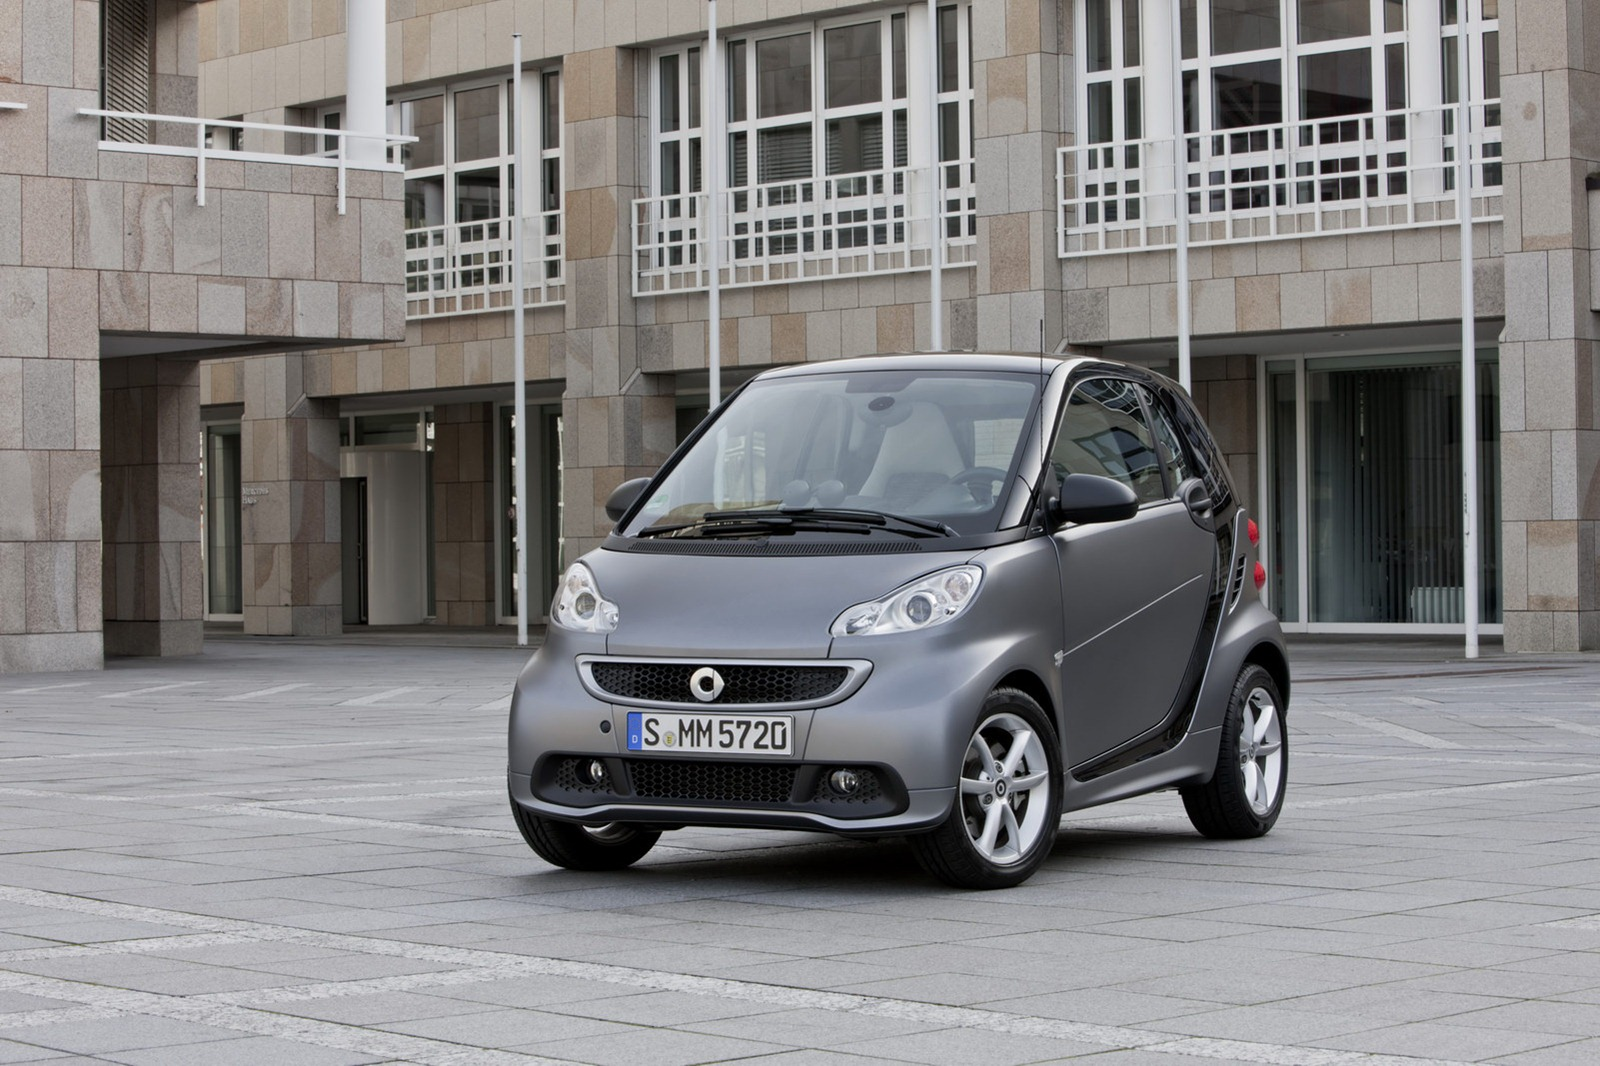 2014 Smart ForTwo development changes